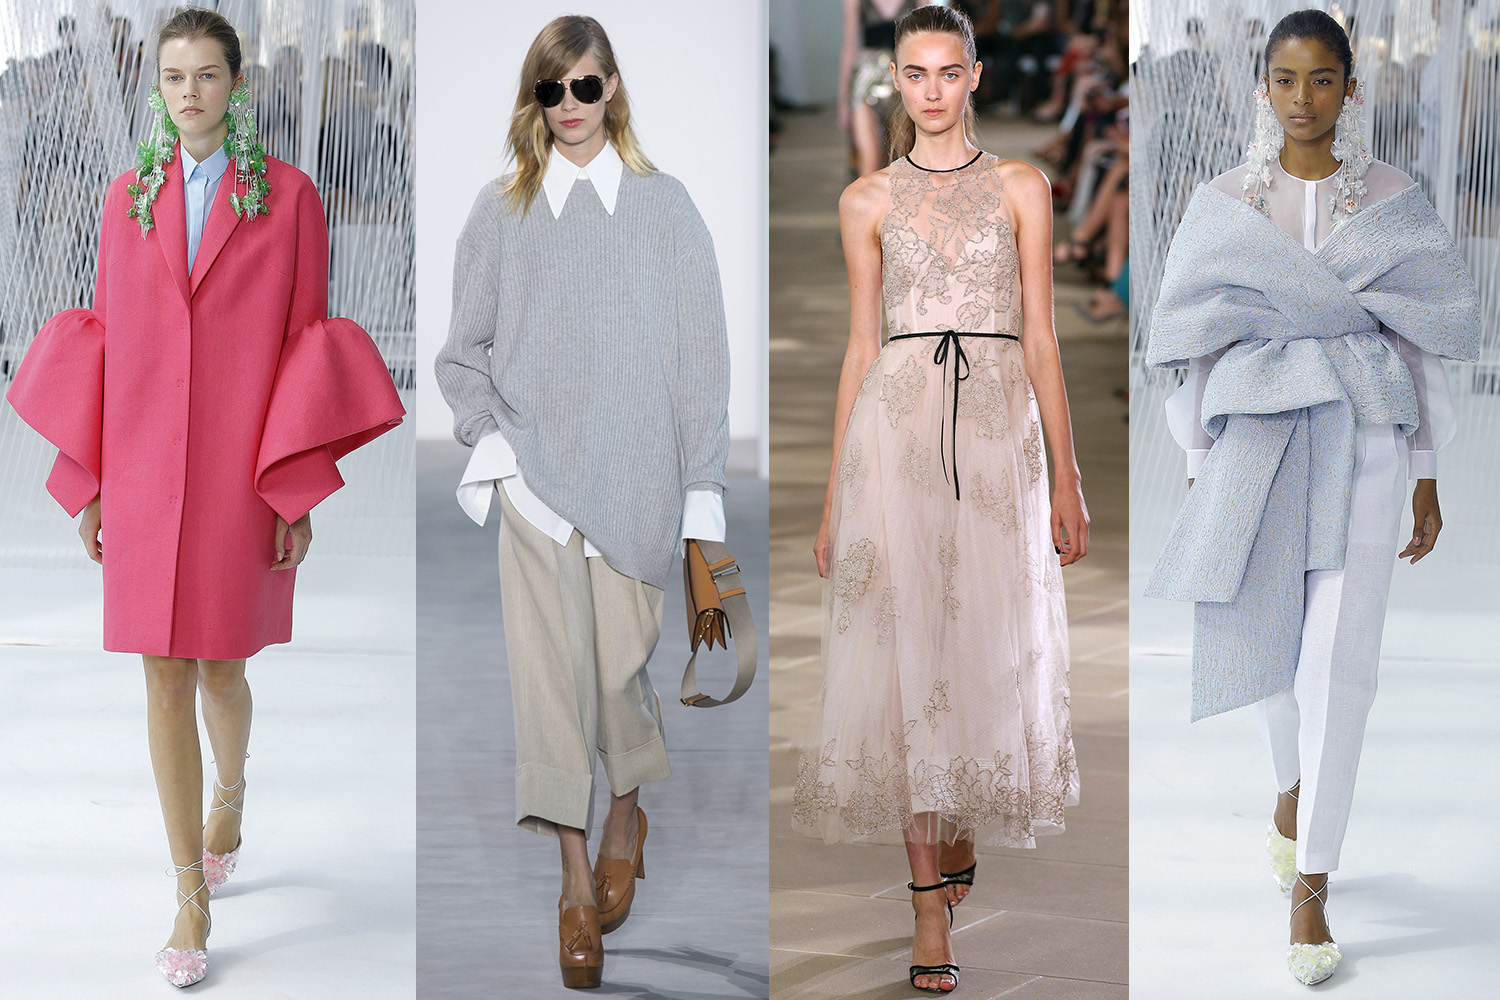 FROM THE LEFT, DELPOZO, MICHAEL KORS, MONIQUE LHUILLIER, DELPOZO  IMAGES COURTESY OF  VOGUE.COM